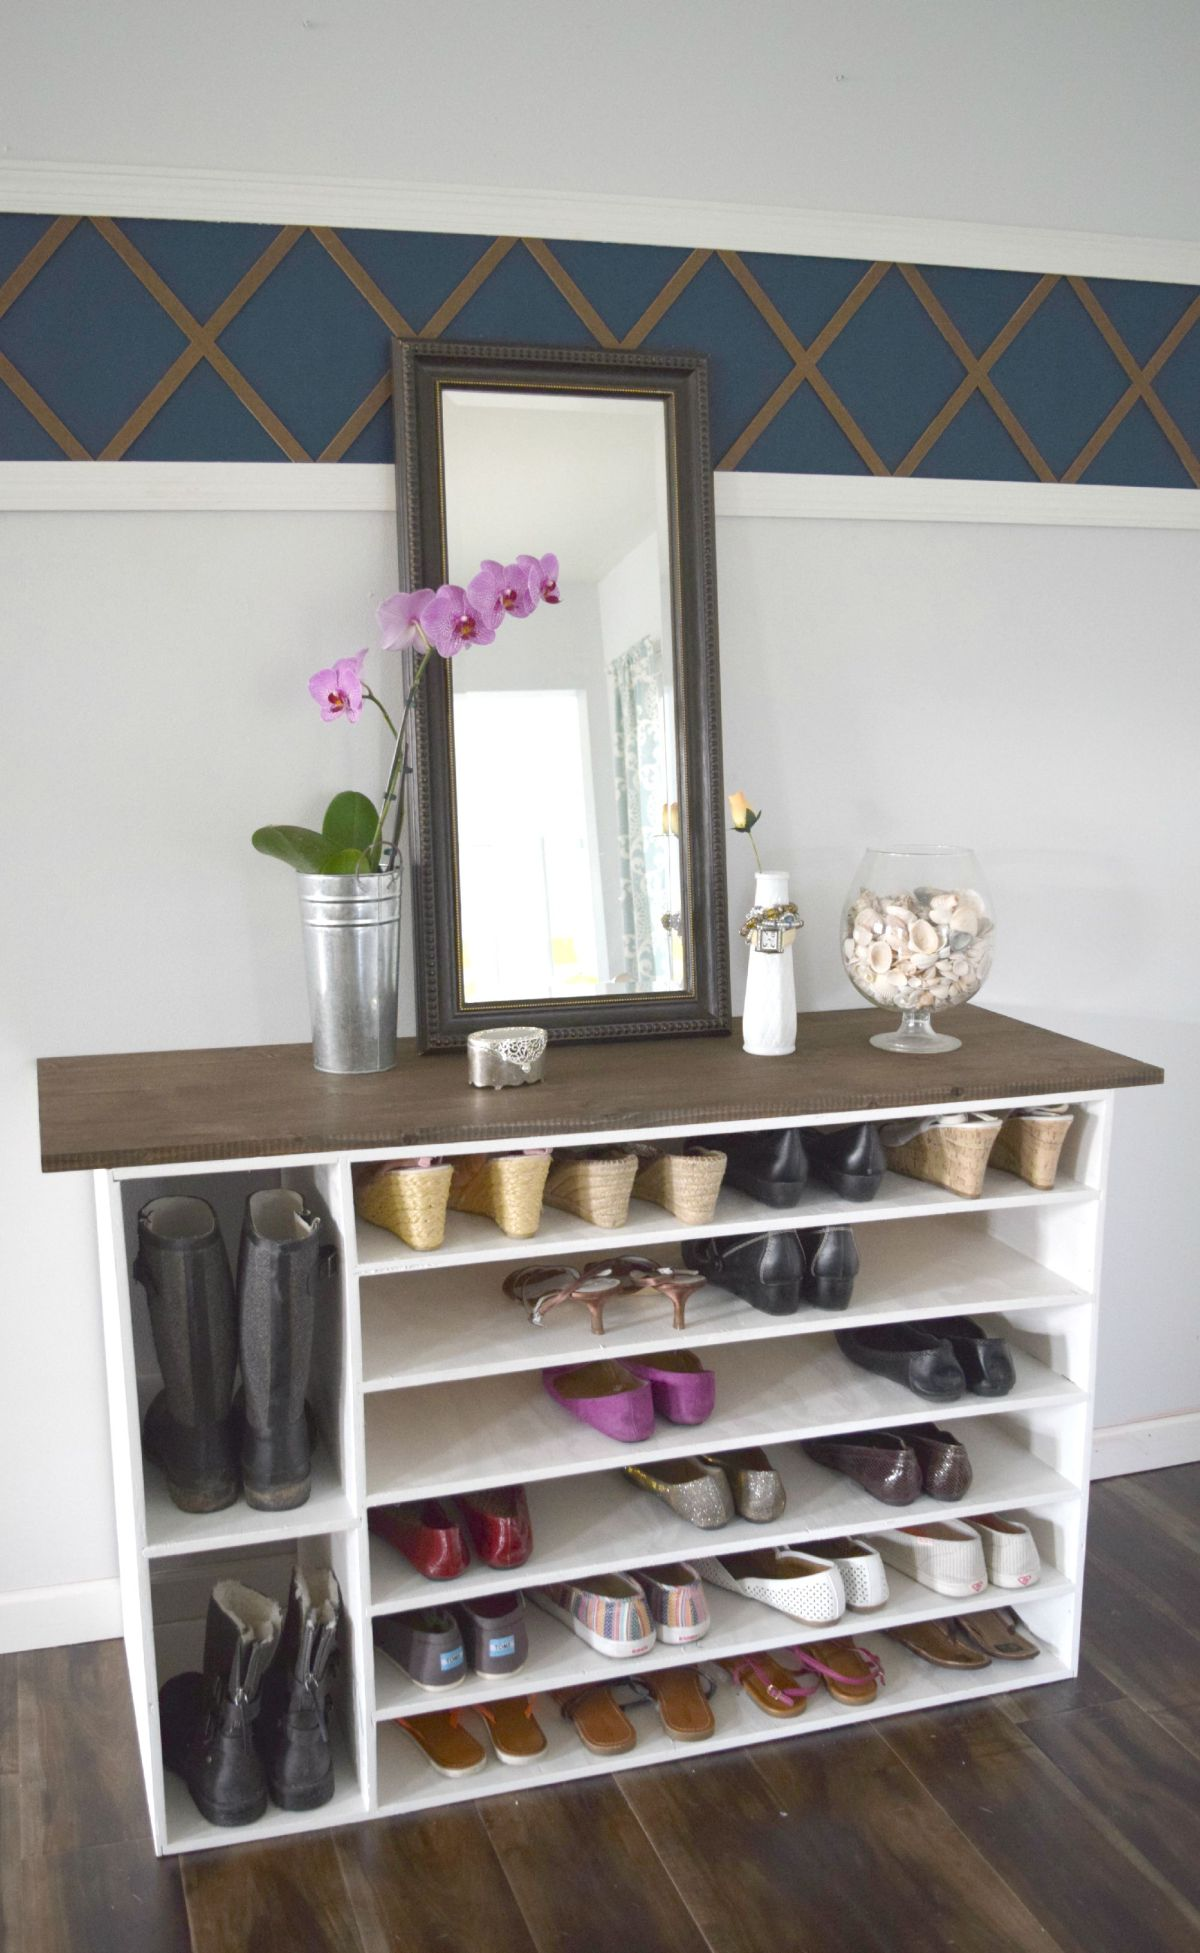 https://cdn.homedit.com/wp-content/uploads/2018/02/Stylish-DIY-Shoe-Rack-Perfect-for-Any-Room.jpg